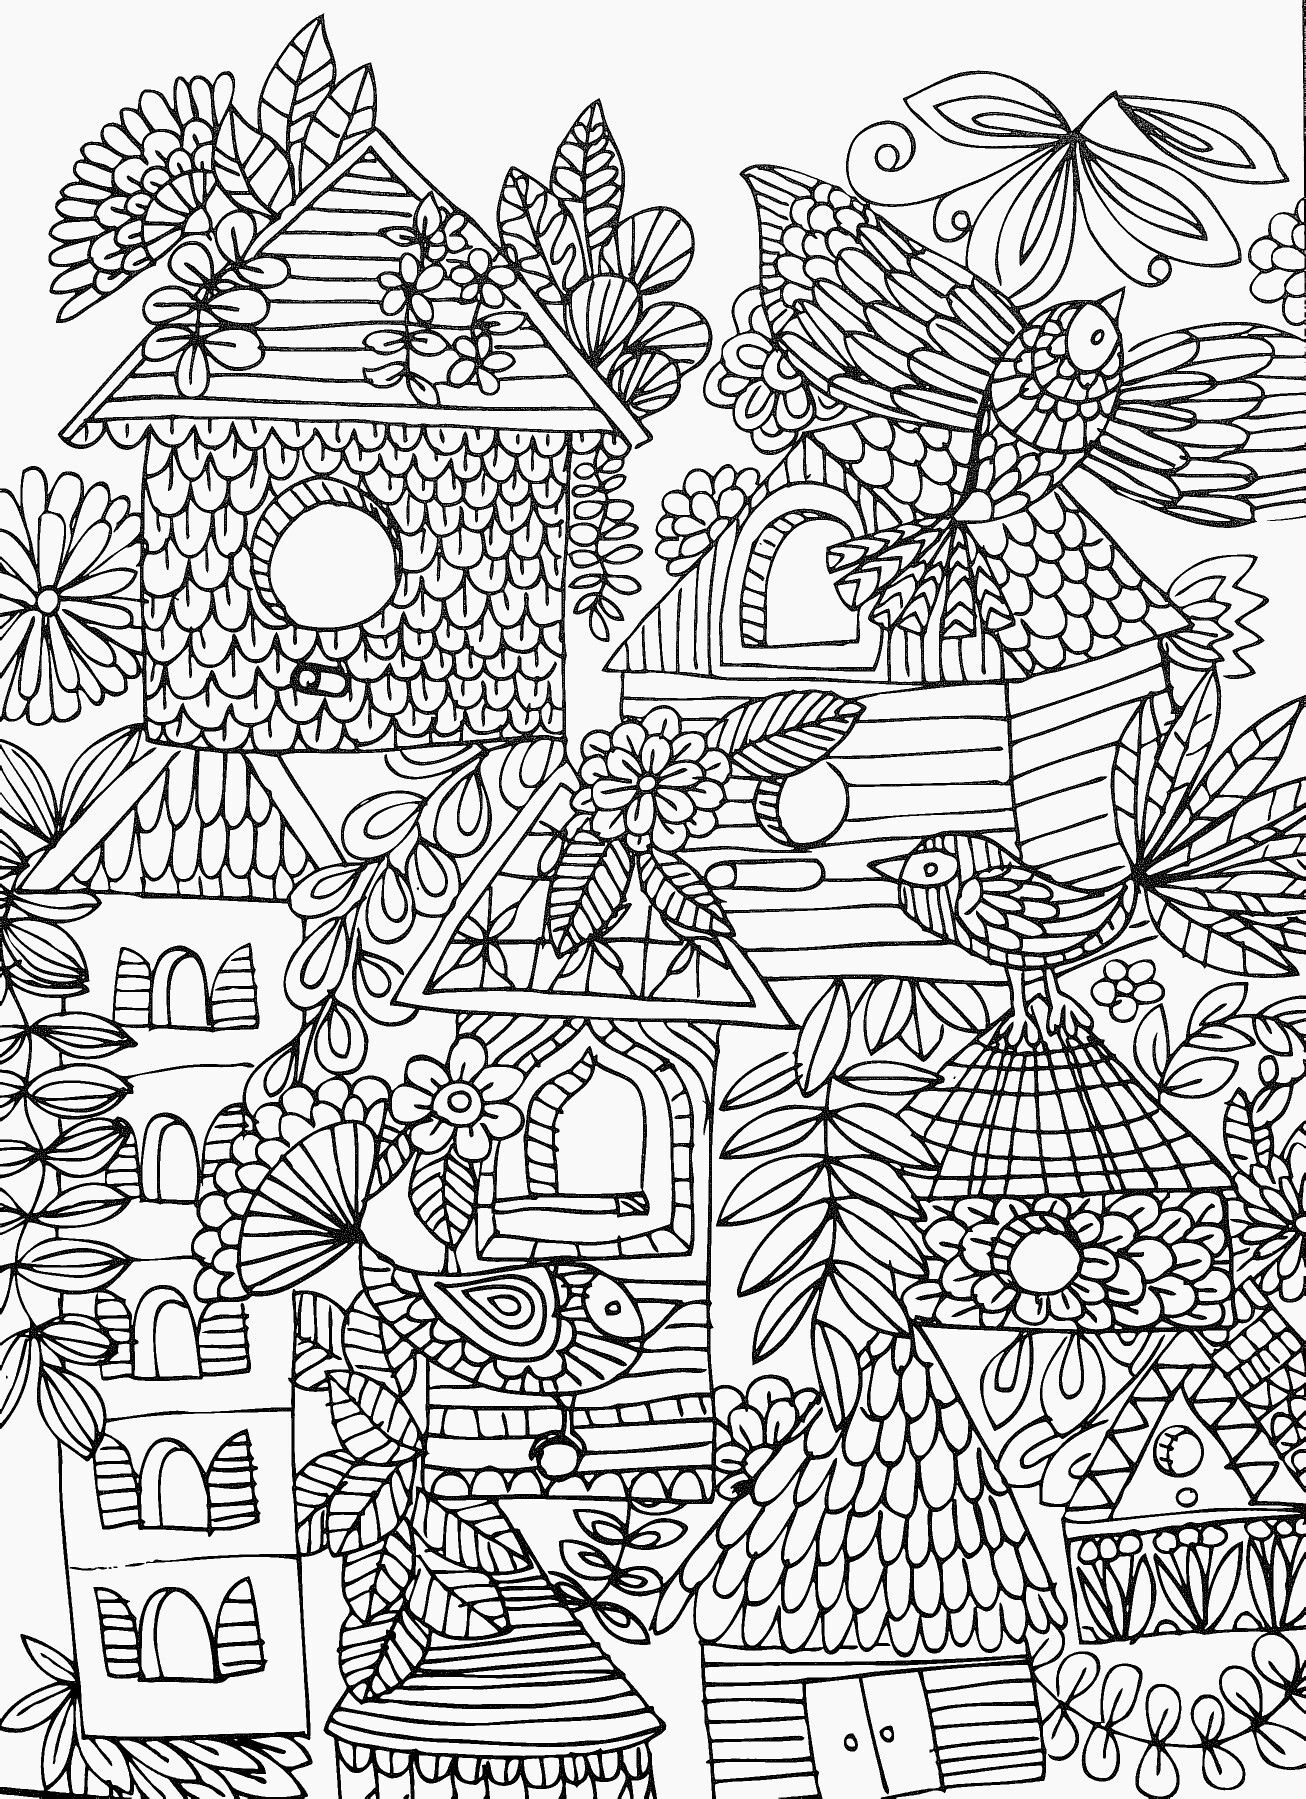 Fun Funky Birds Birdhouses Adult Coloring Page Abstract